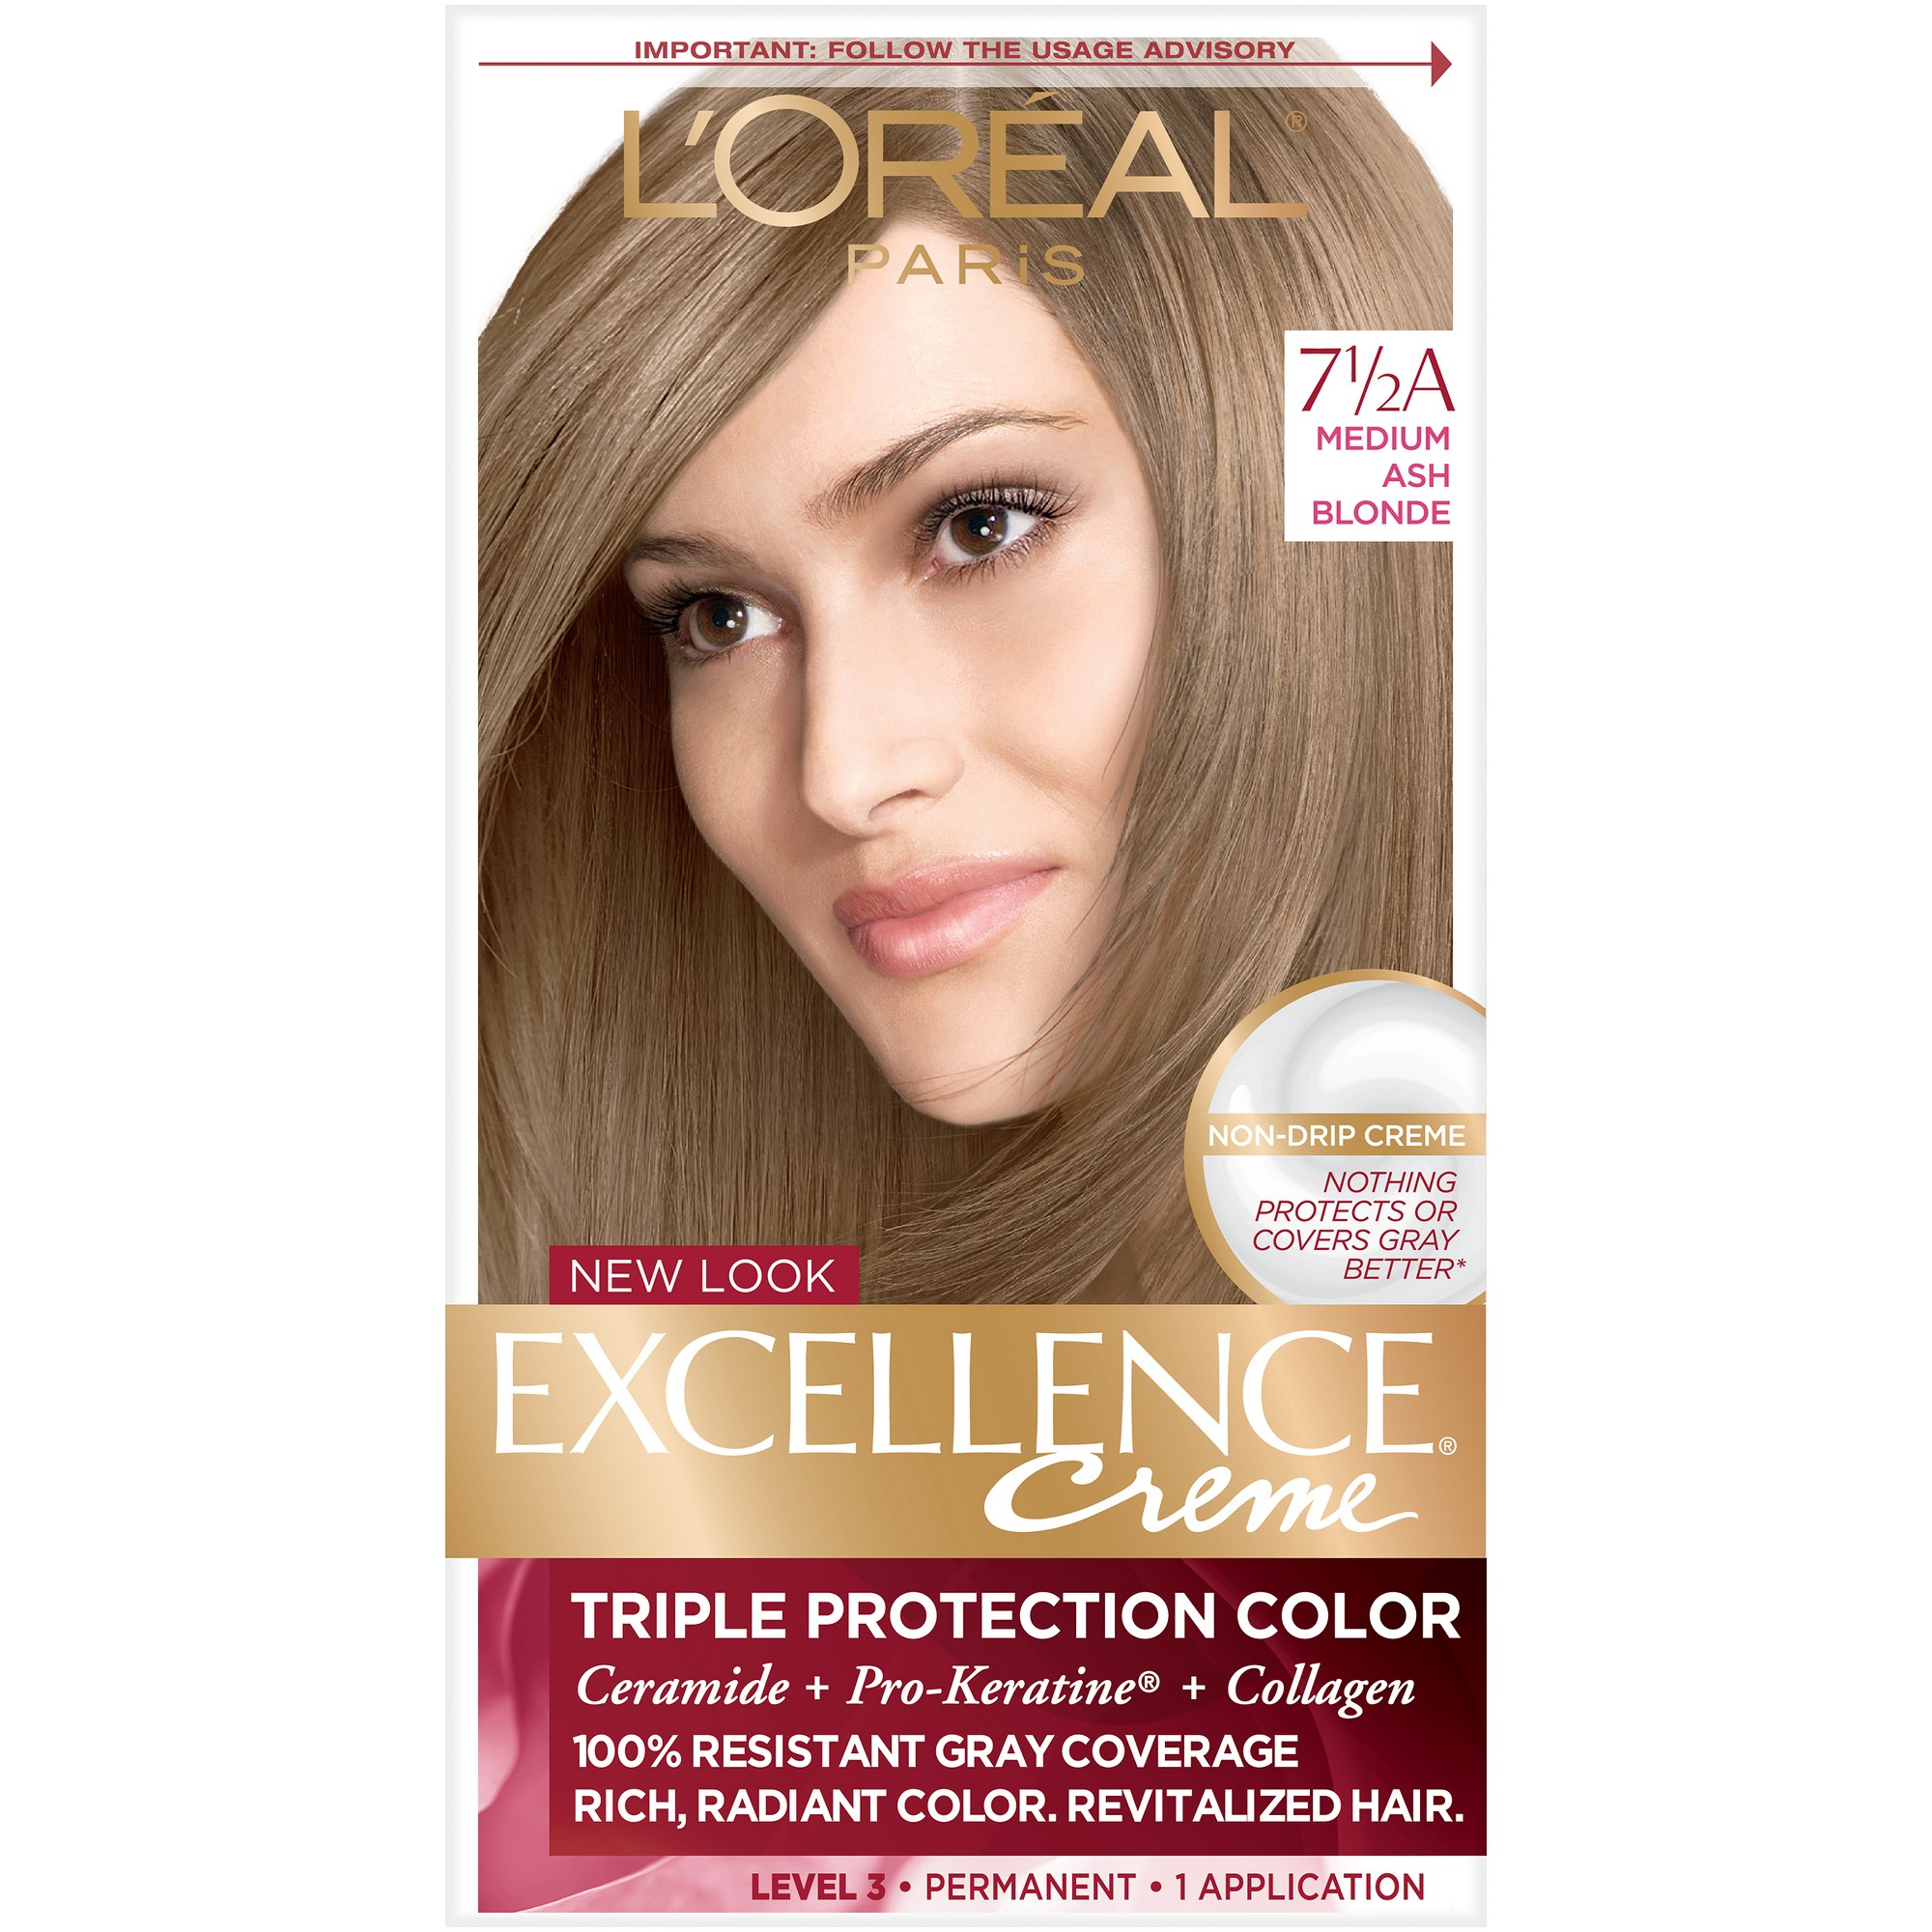 L Oreal Paris Excellence Triple Protection Permanent Hair Color 6 3 Fl Oz 7 5 A M Ash Blonde 1 Kit Medium Ash Blonde Grey Hair Coverage Permanent Hair Color